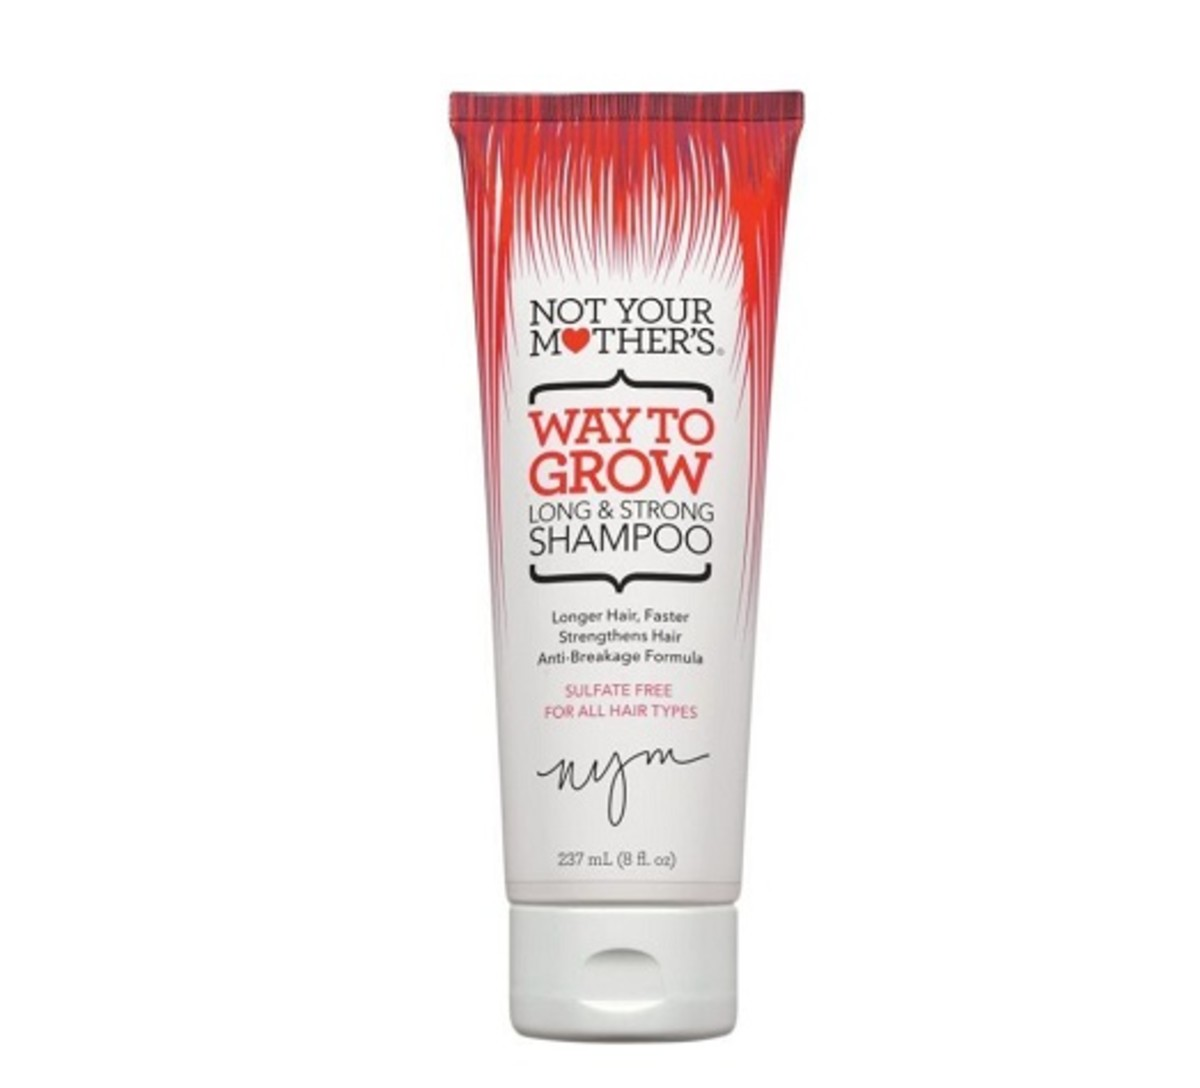 Not Your Mother's Way to Grow Long & Strong Hair Shampoo